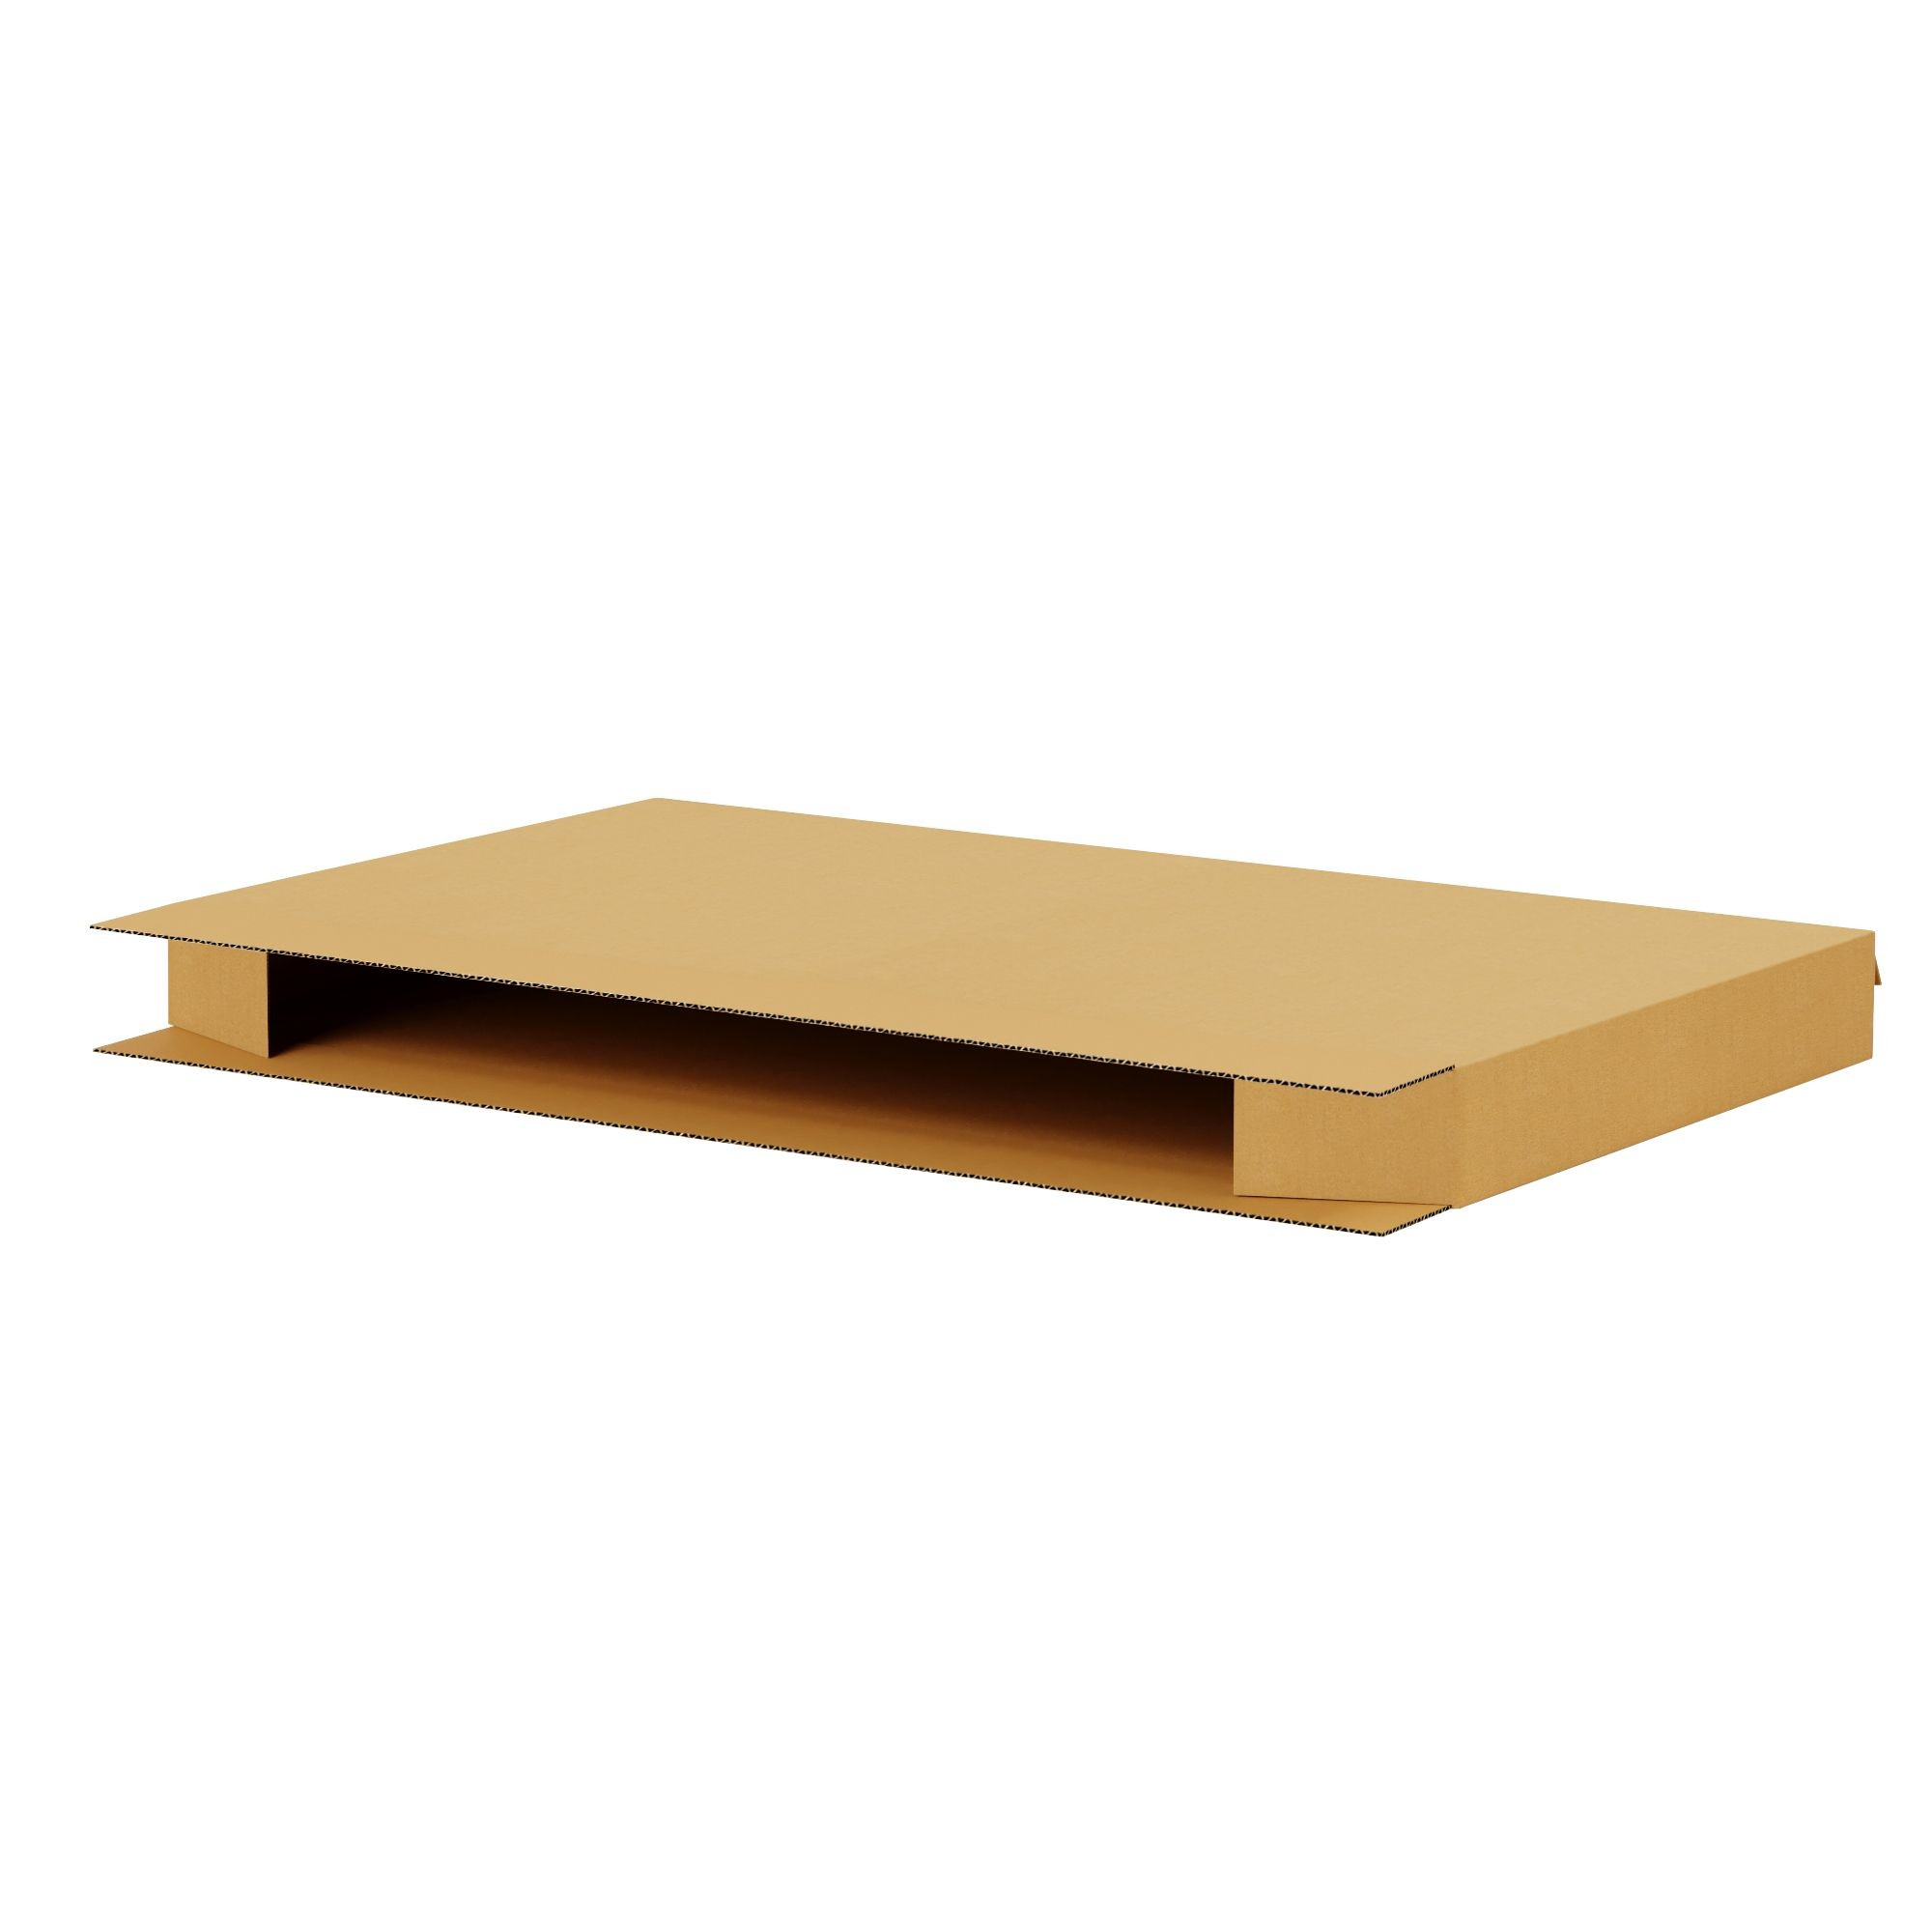 "TOTALPACK® 80 x 8 1/2 x 40"" King - Queen Mattress Corrugated Boxes 1 Unit"